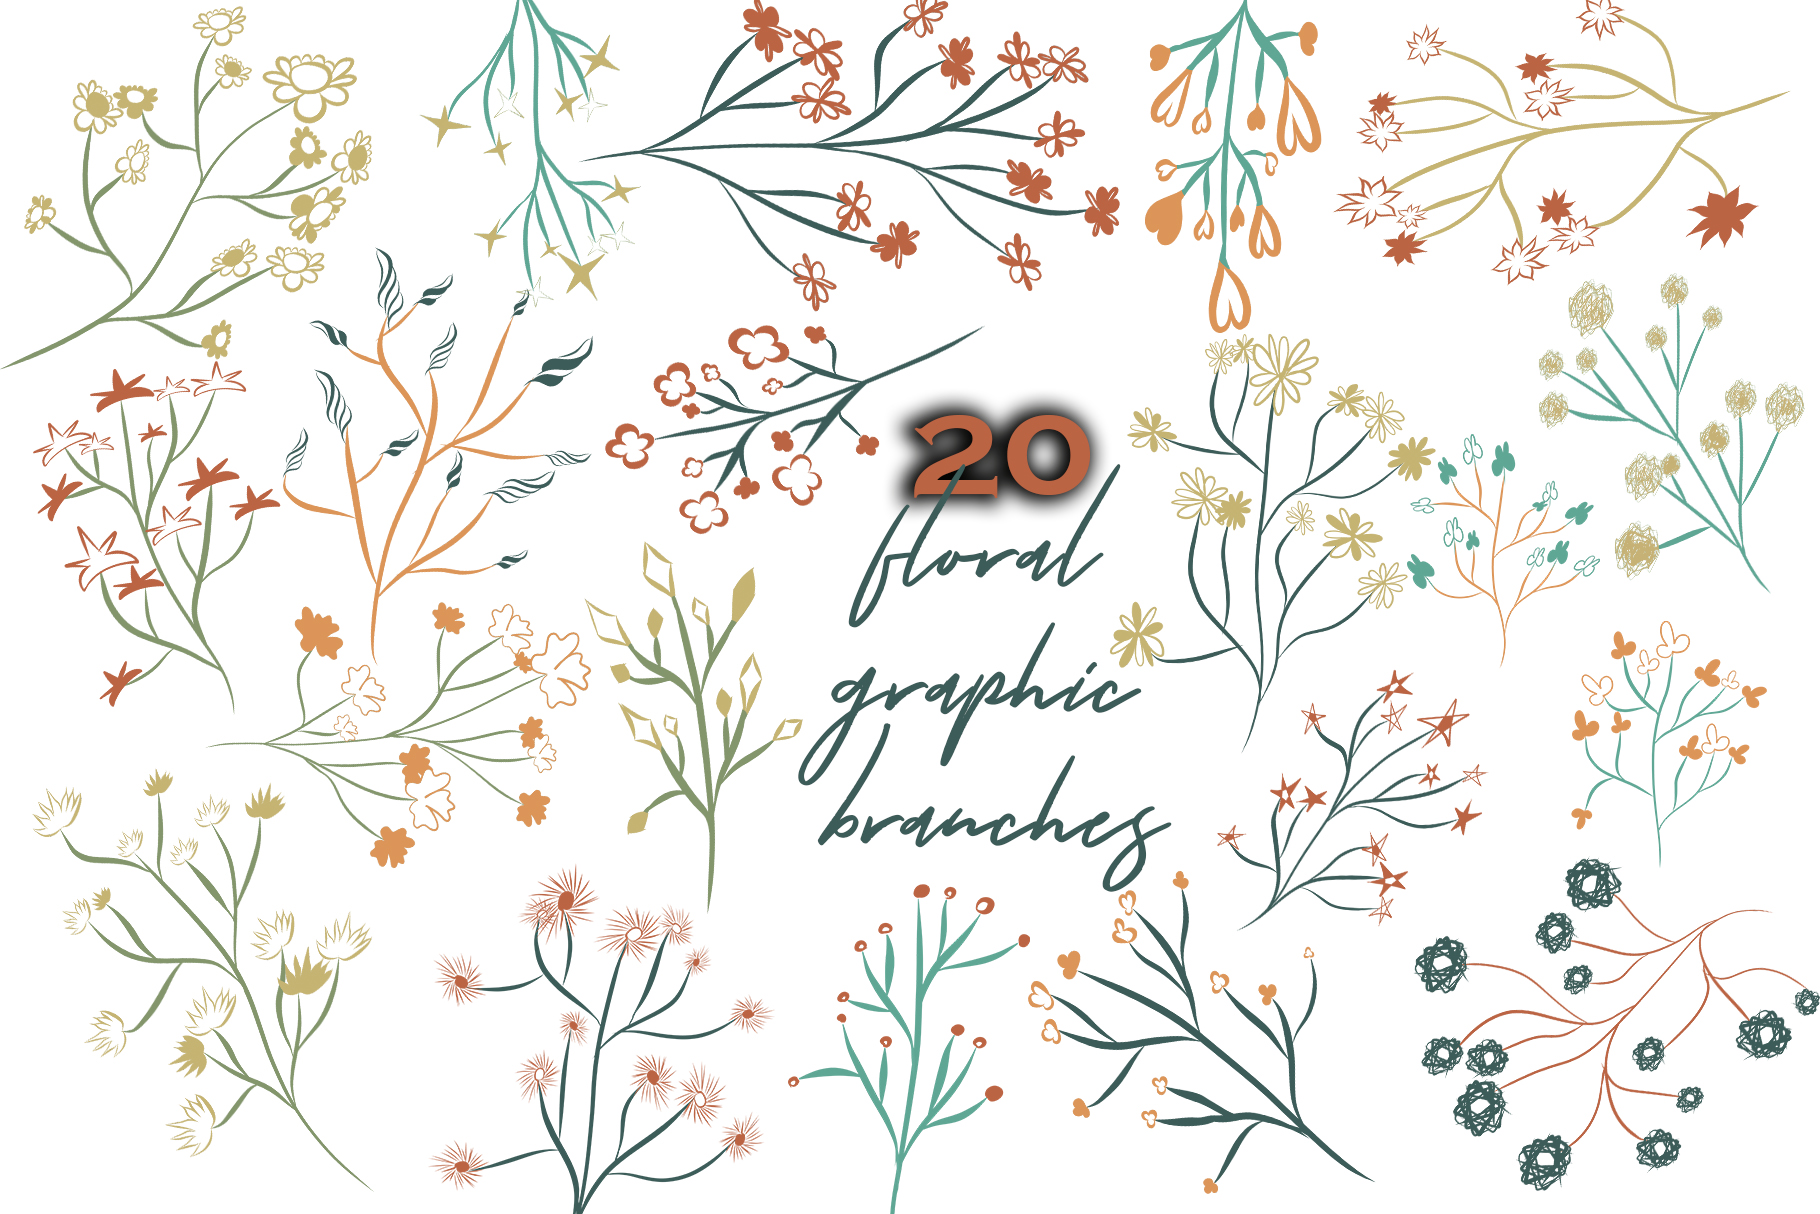 Floral graphic branches example image 2